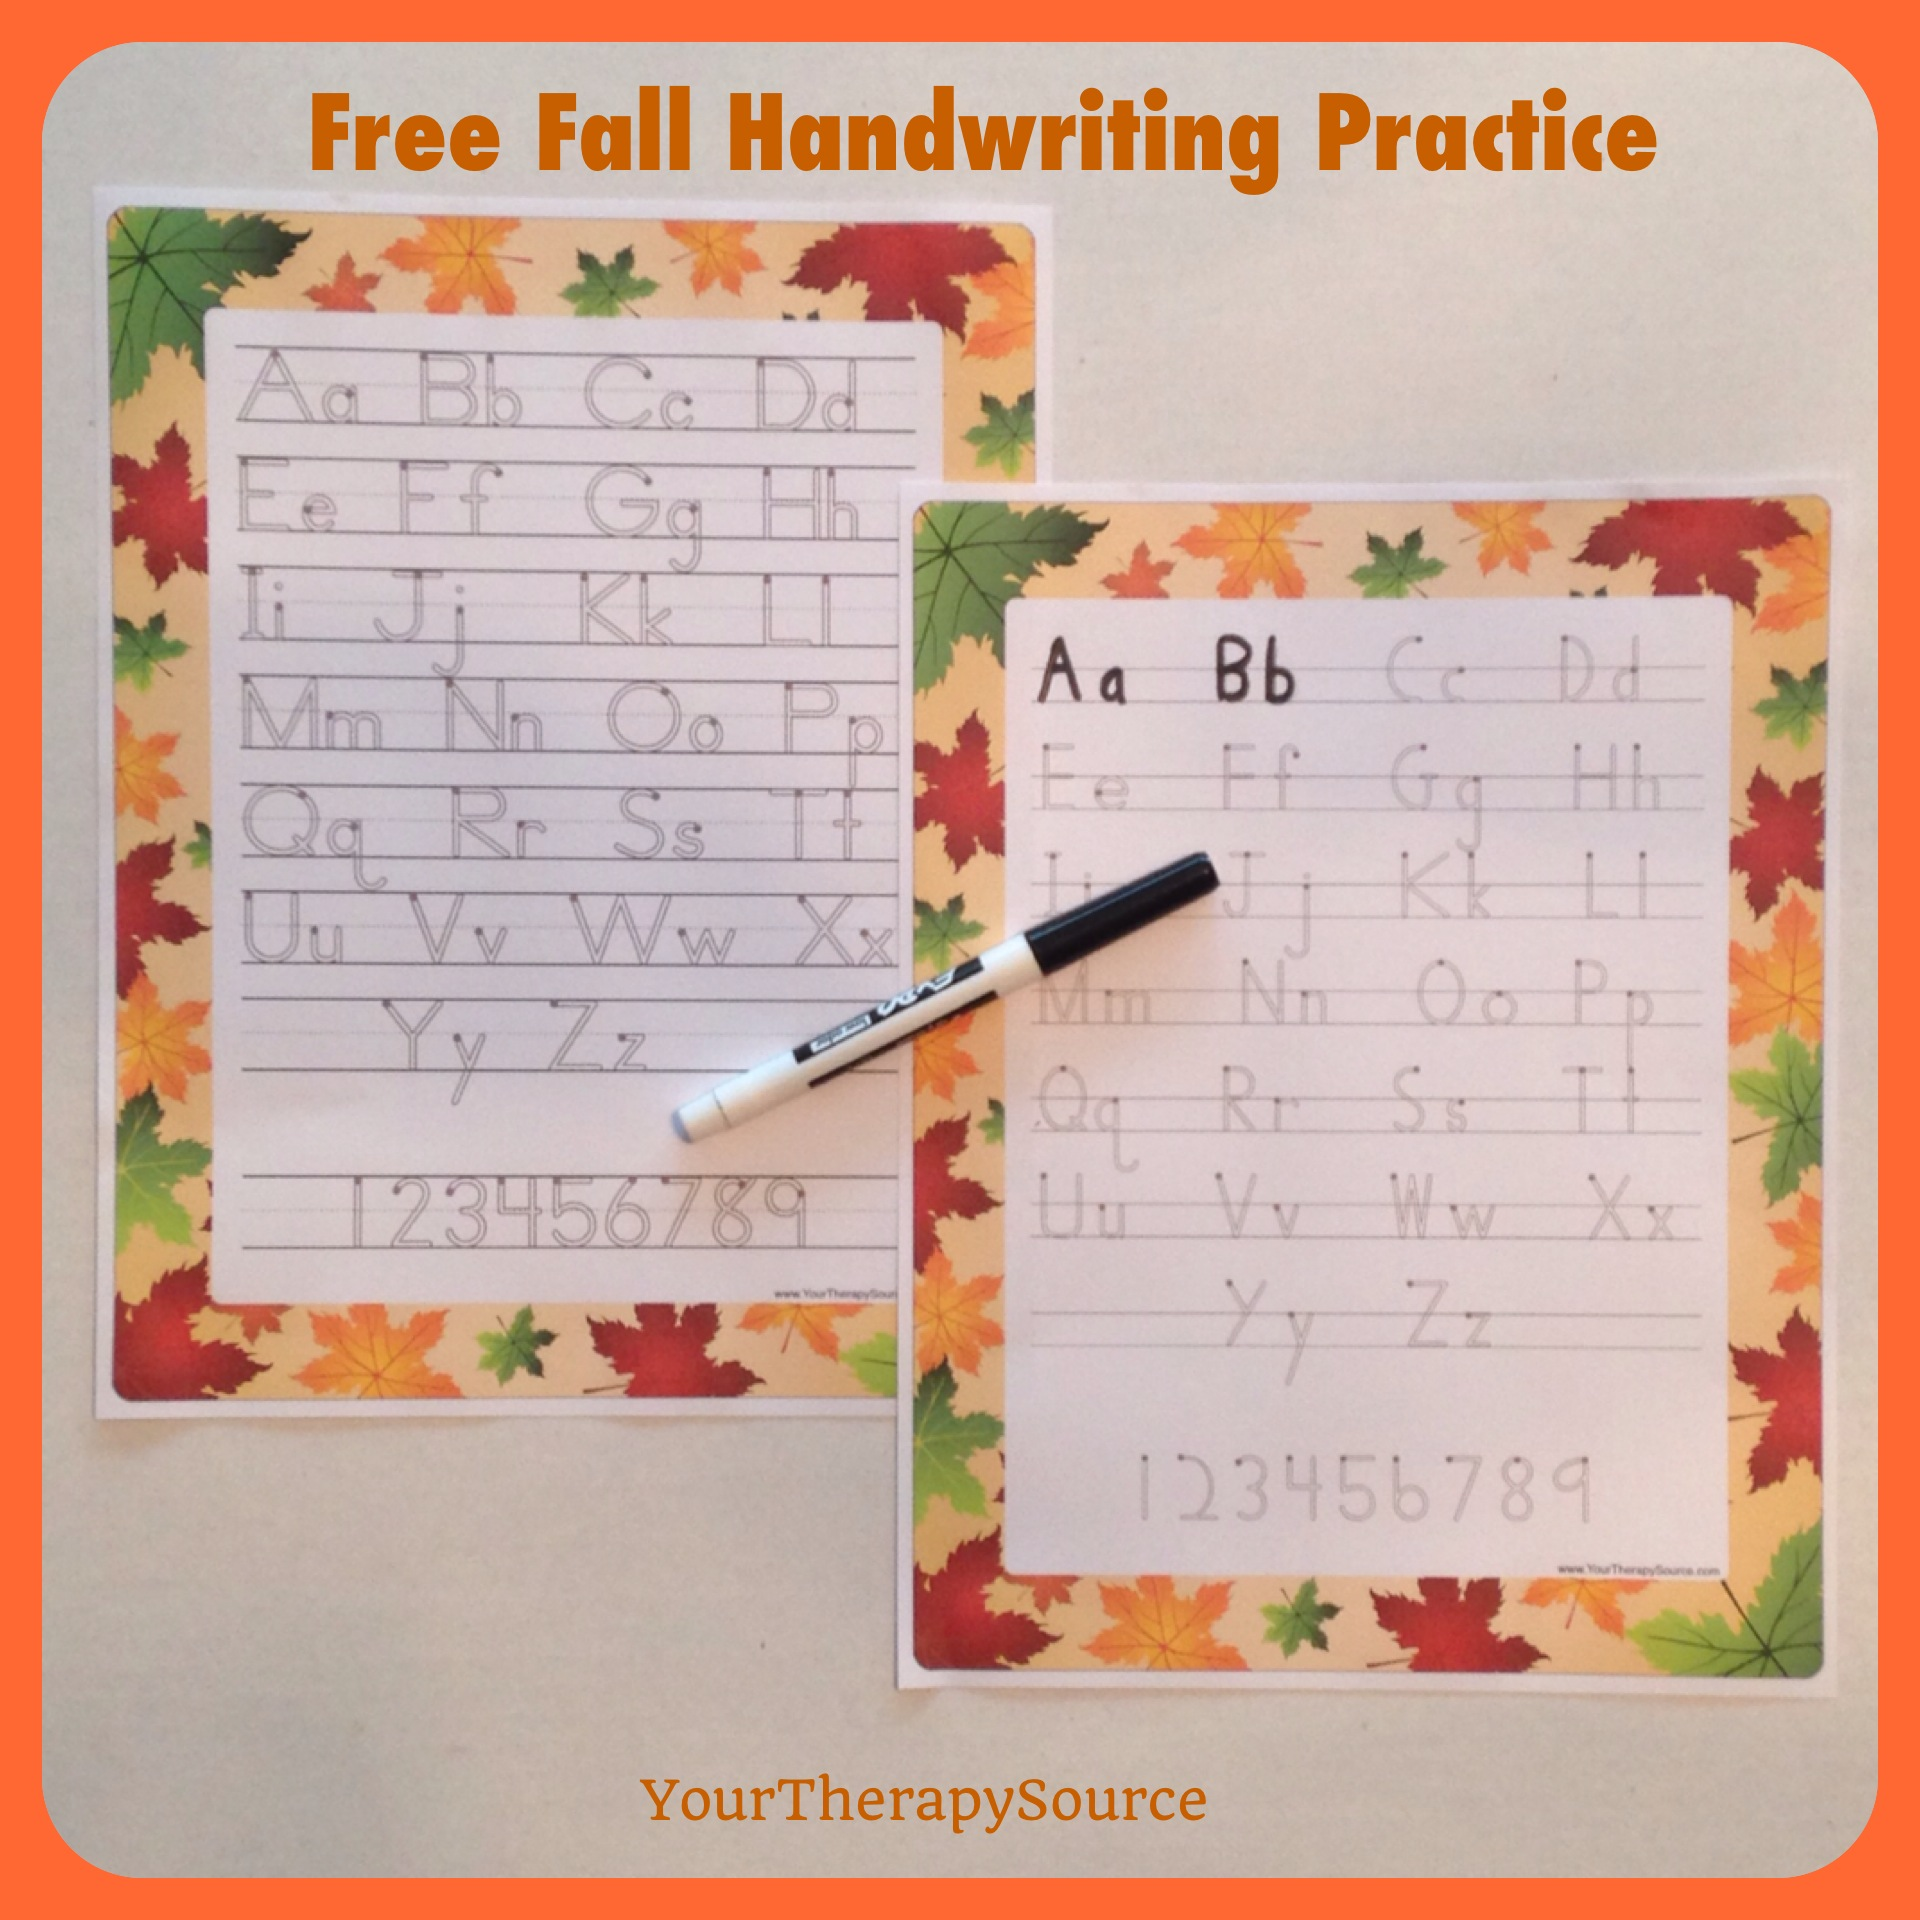 Free Fall Handwriting Practice Pages www.YourTherapySource.com